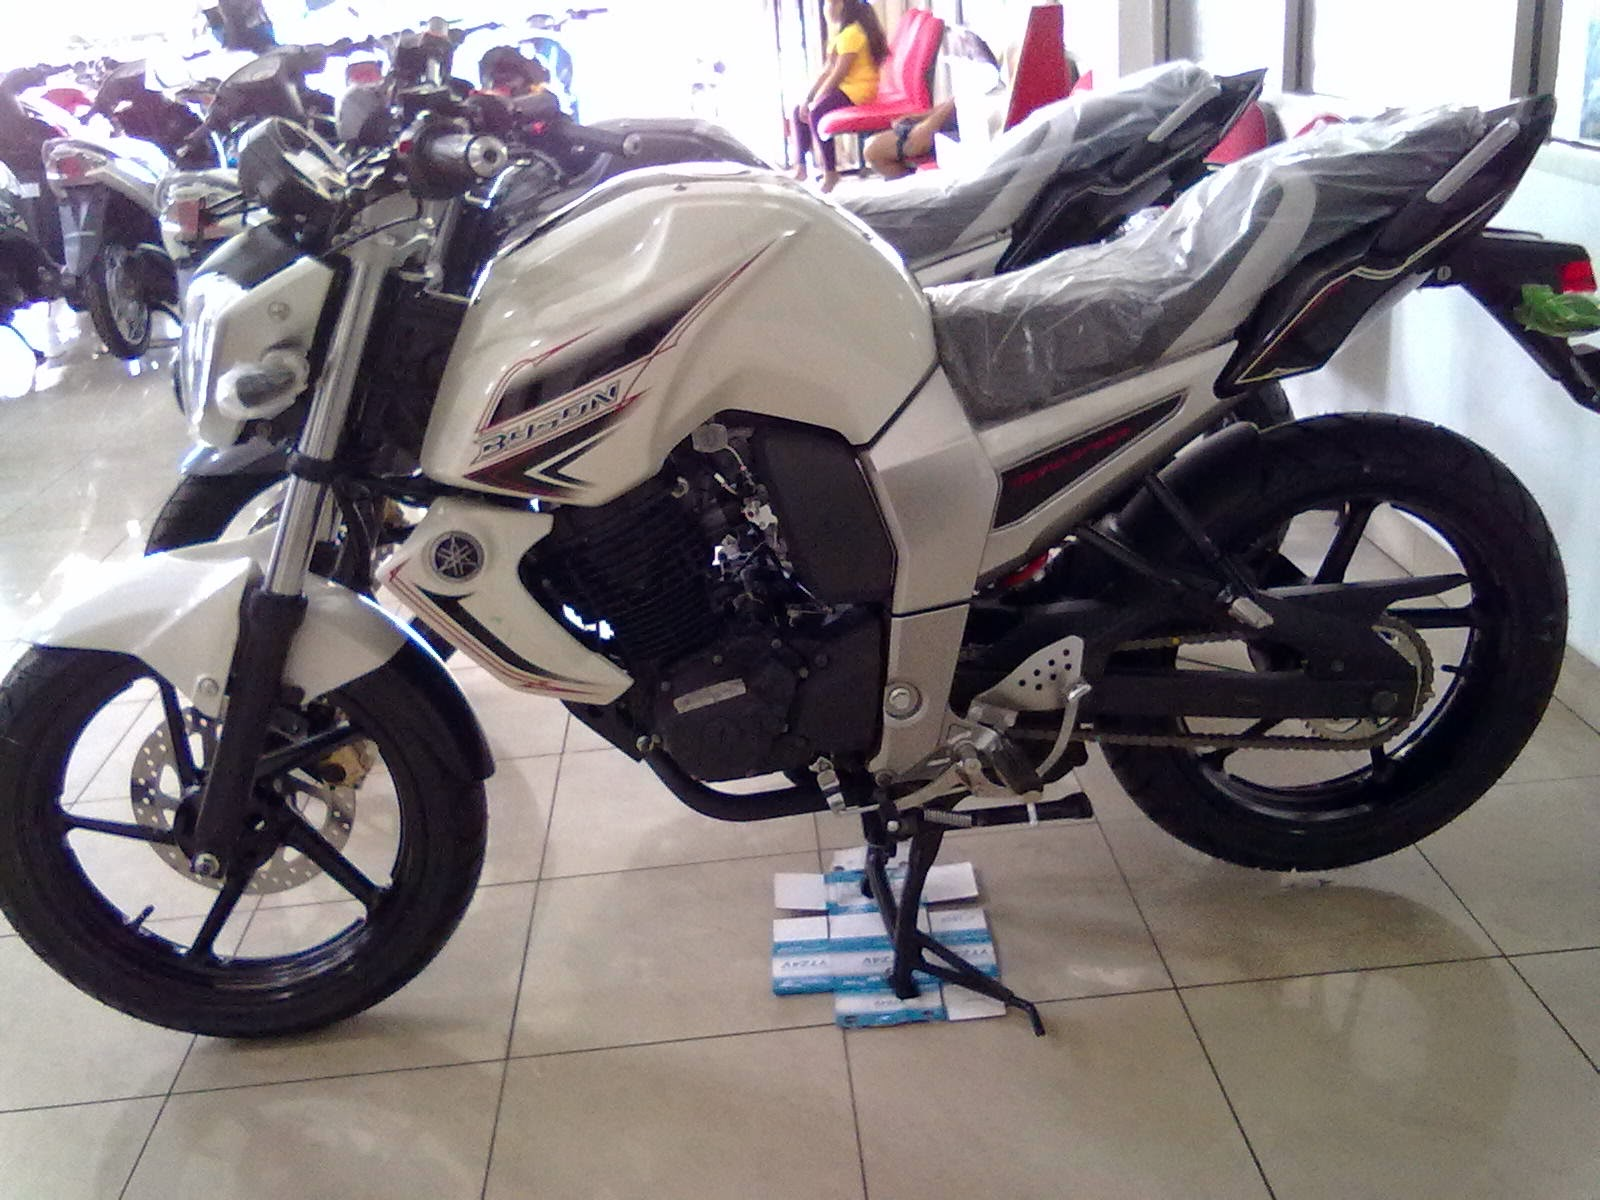 Supra X 125 Modifikasi Warna Merah